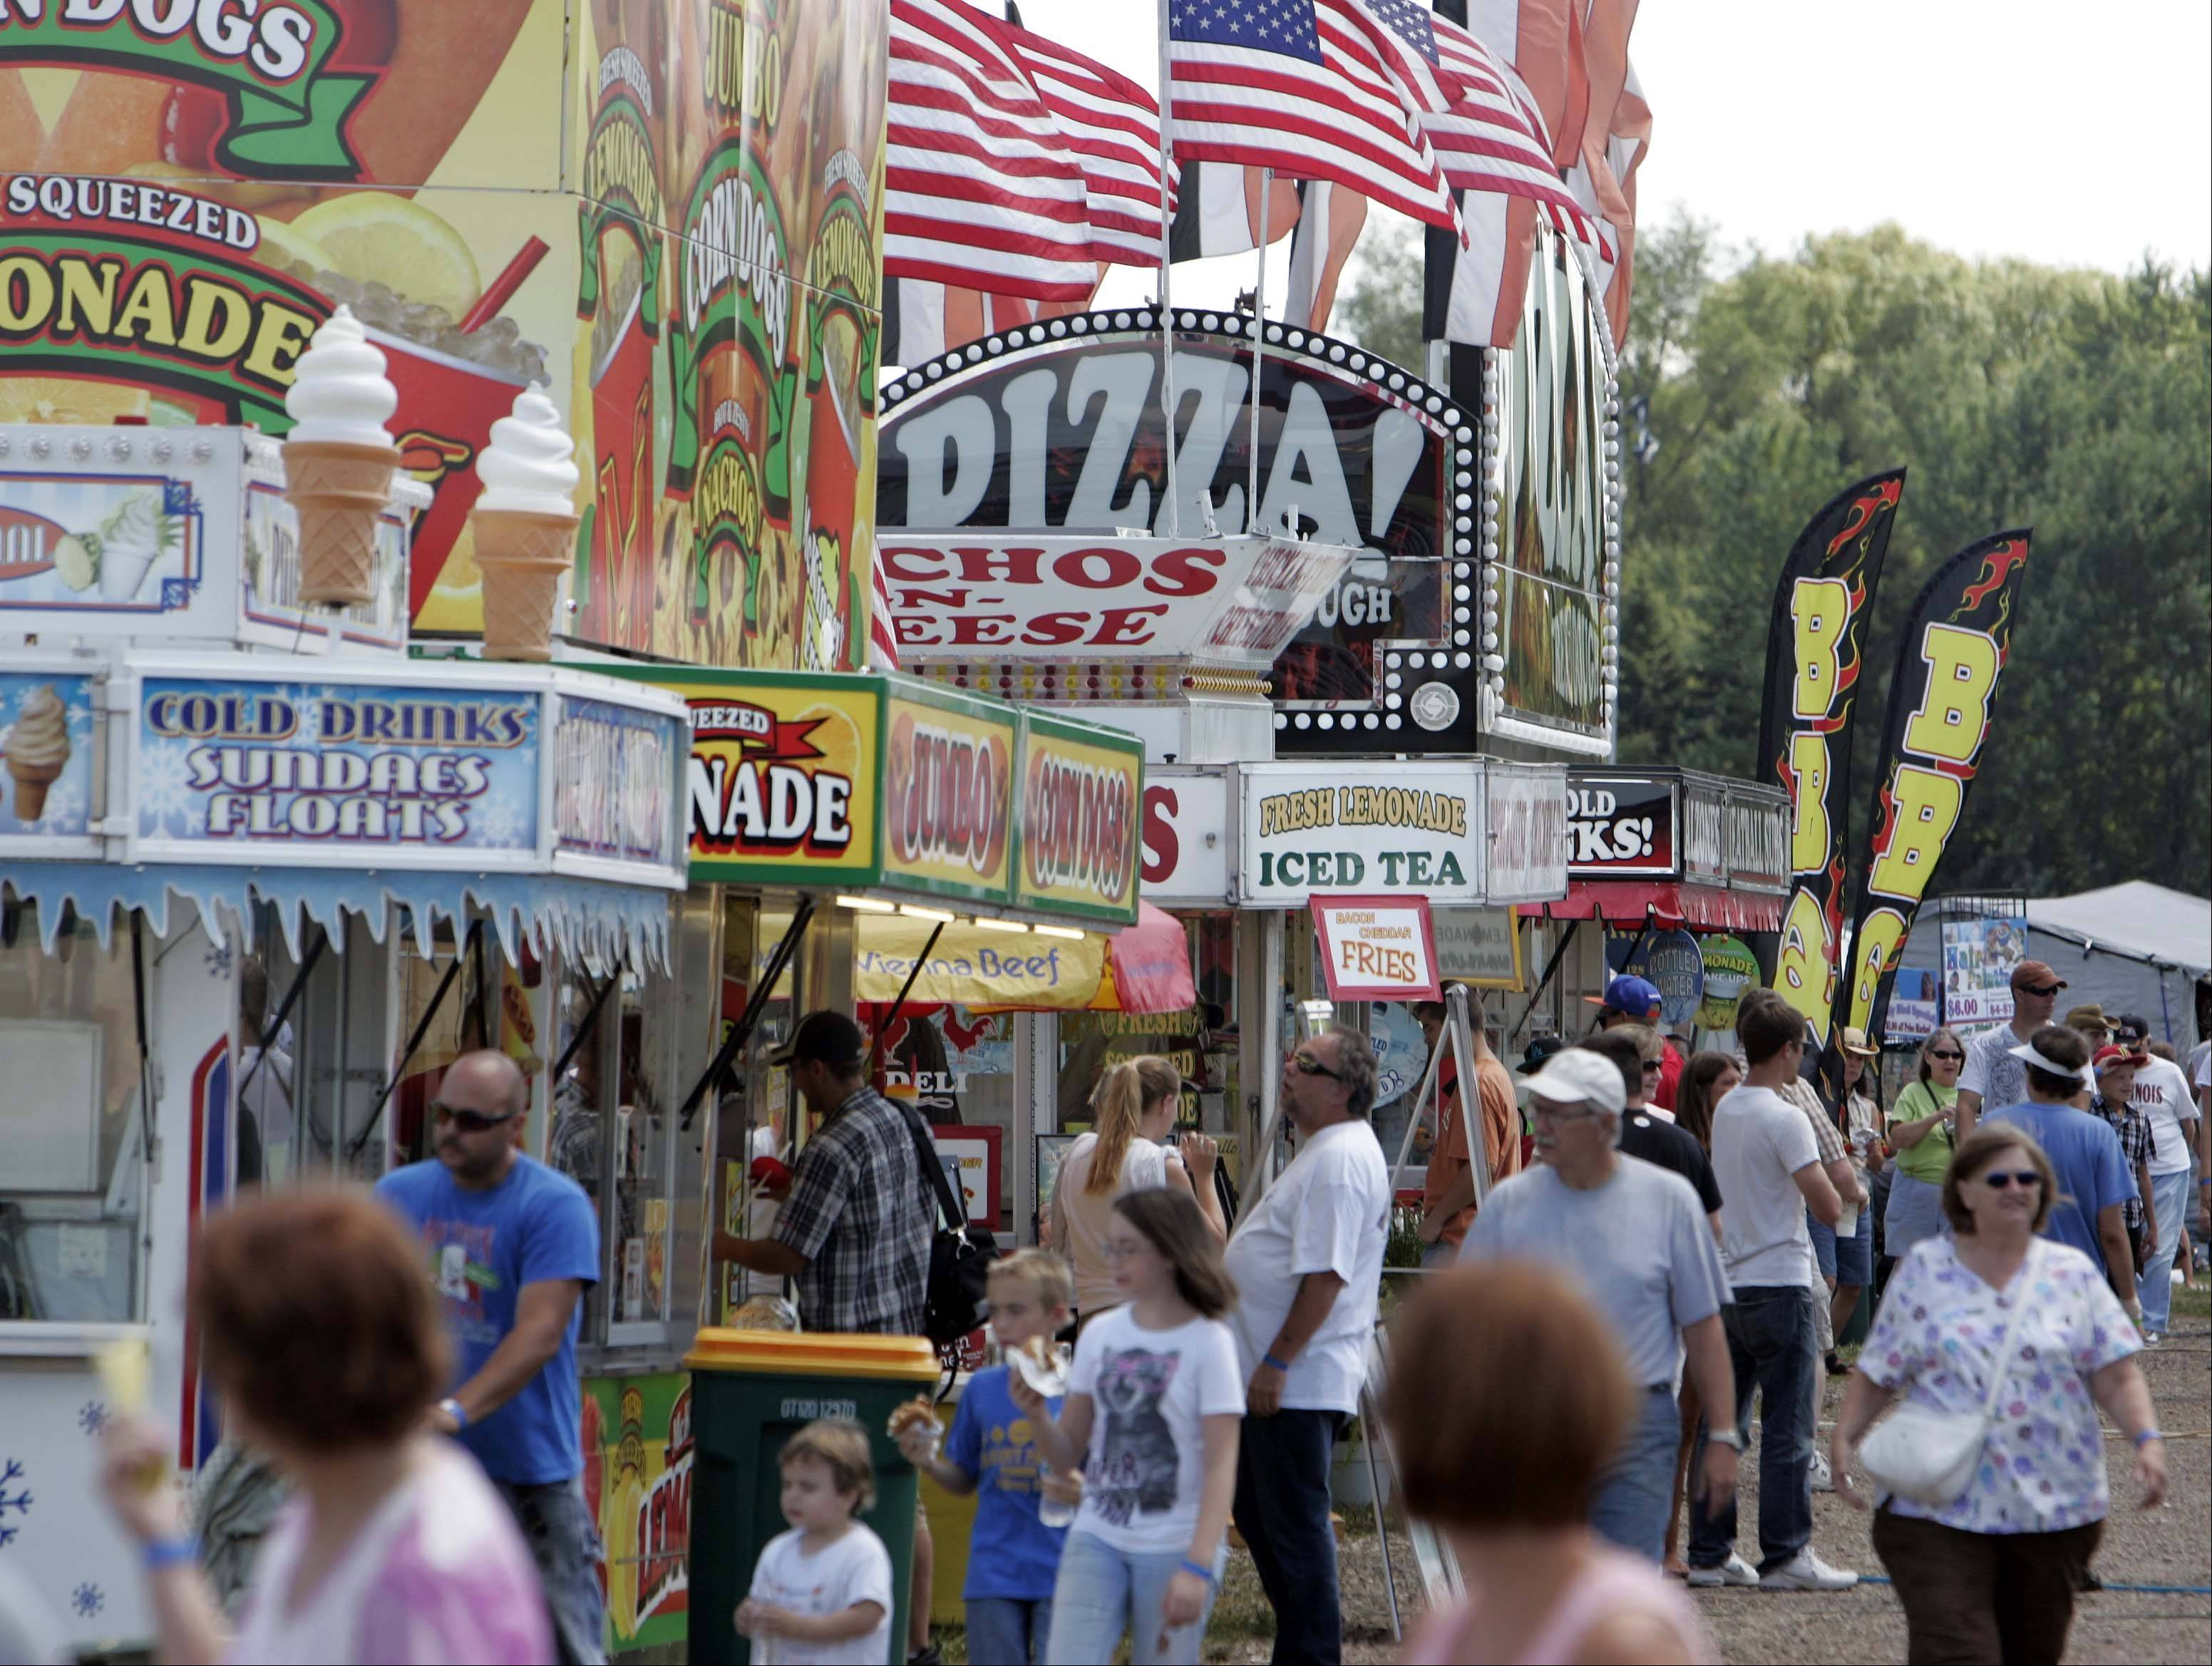 The food booths at the McHenry County Fair are lined with people Sunday August 5, 2012 in Woodstock.